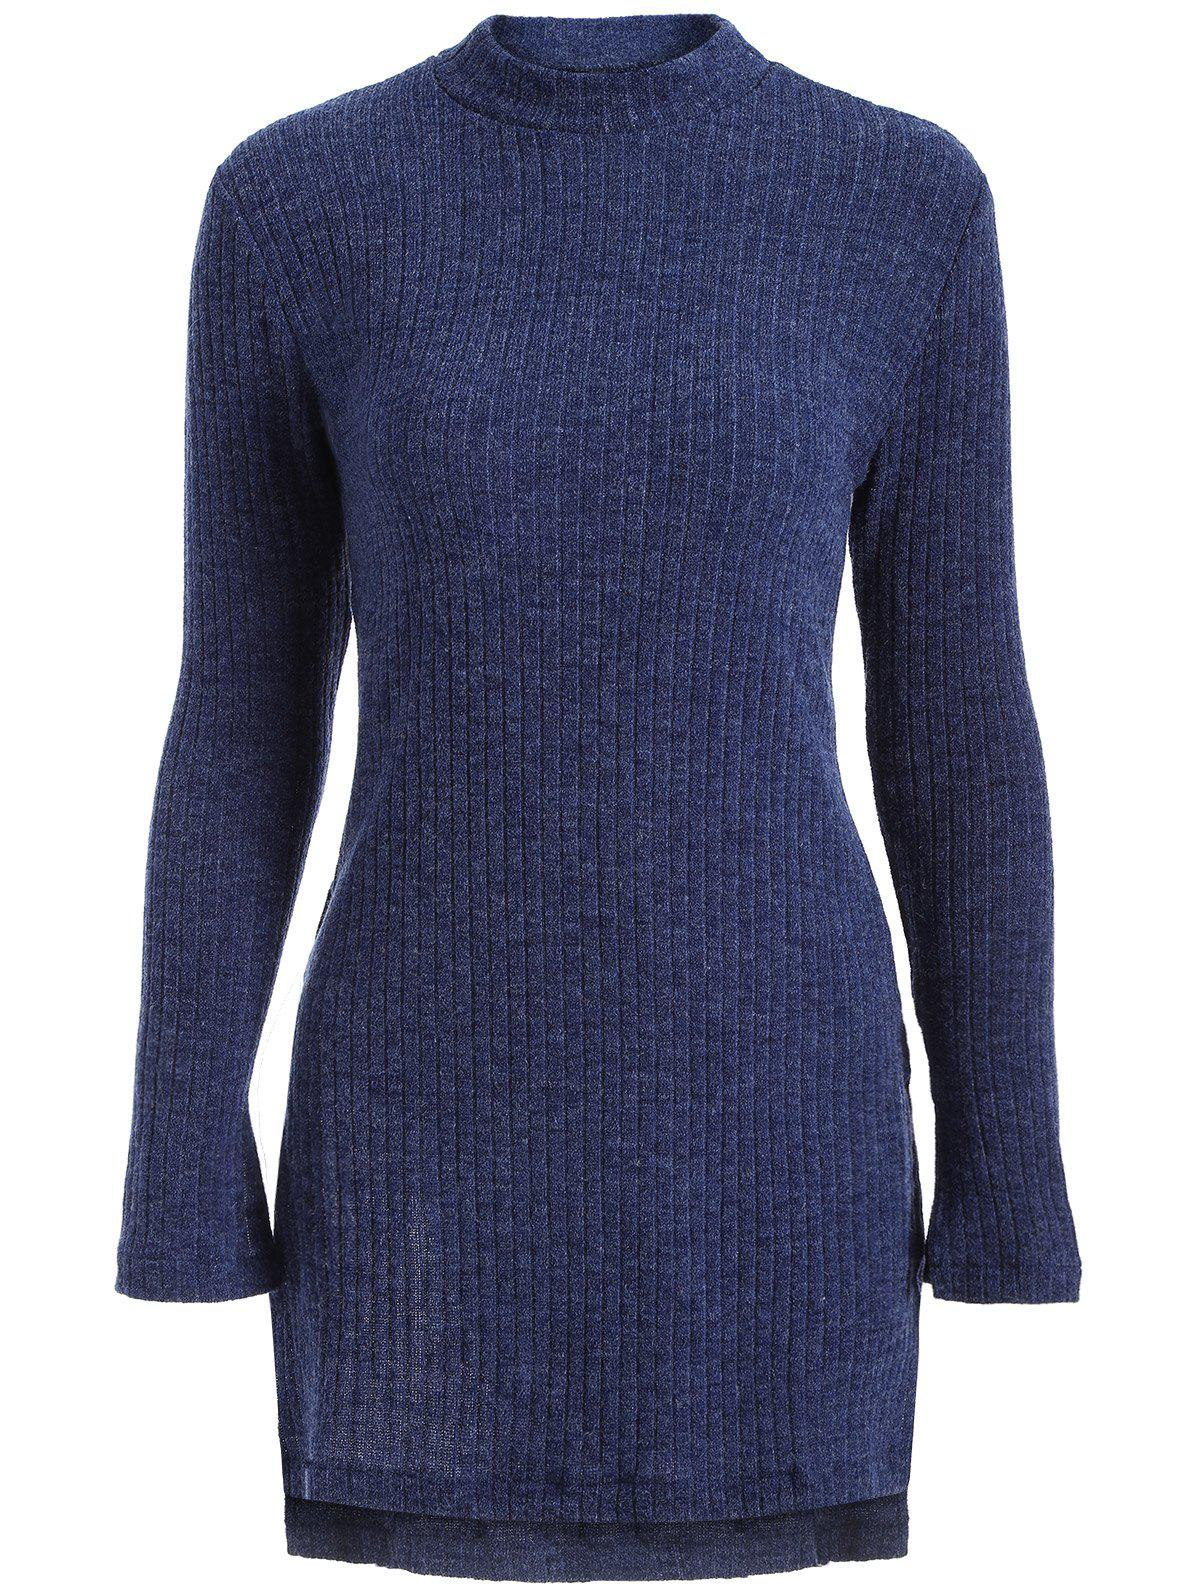 High Neck Side Slit Tunic Sweater Deep Blue Xl In